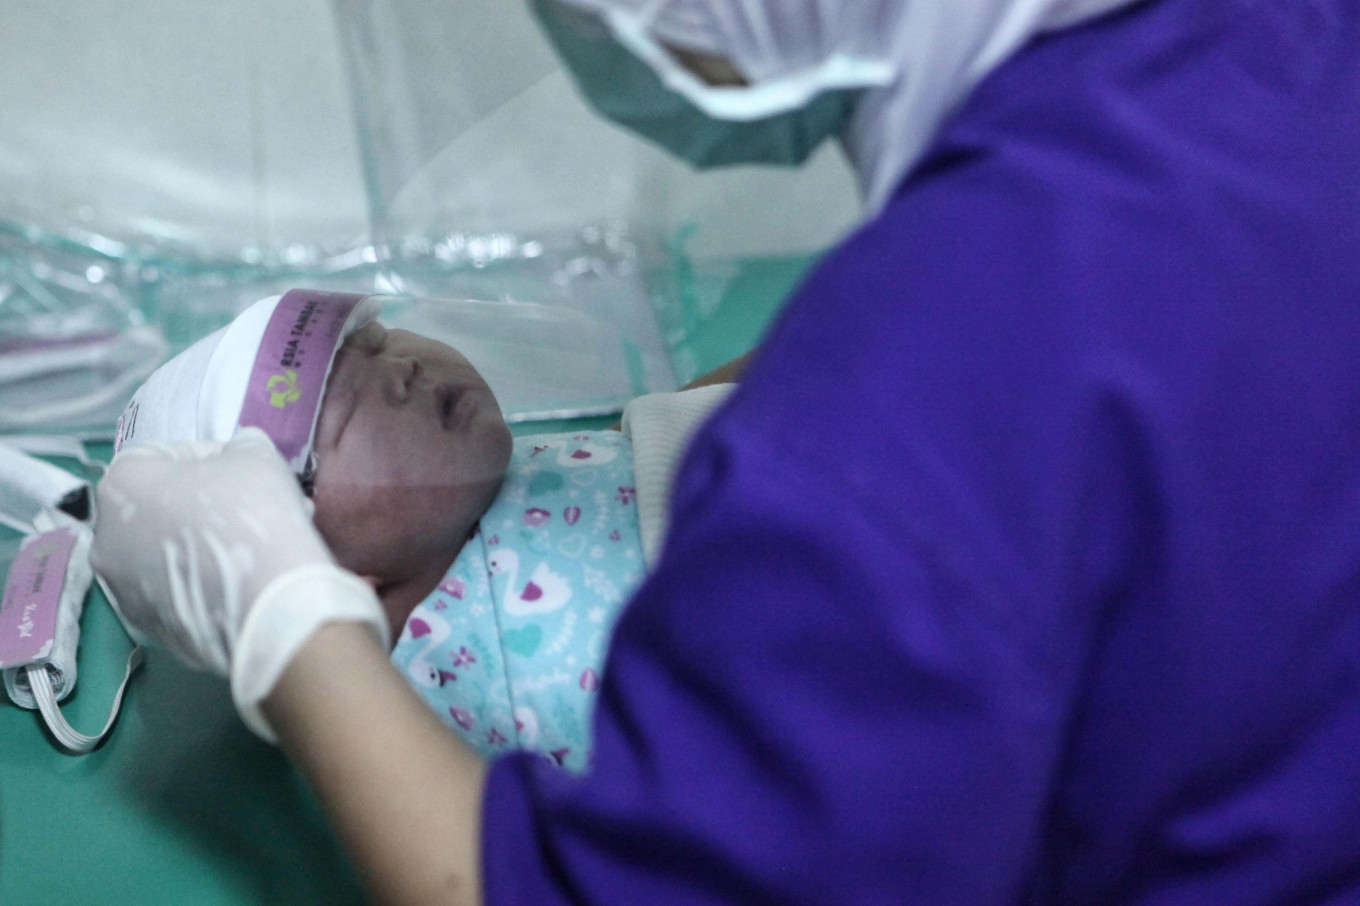 'Negative COVID-19 but positive pregnancy': Best to delay new baby